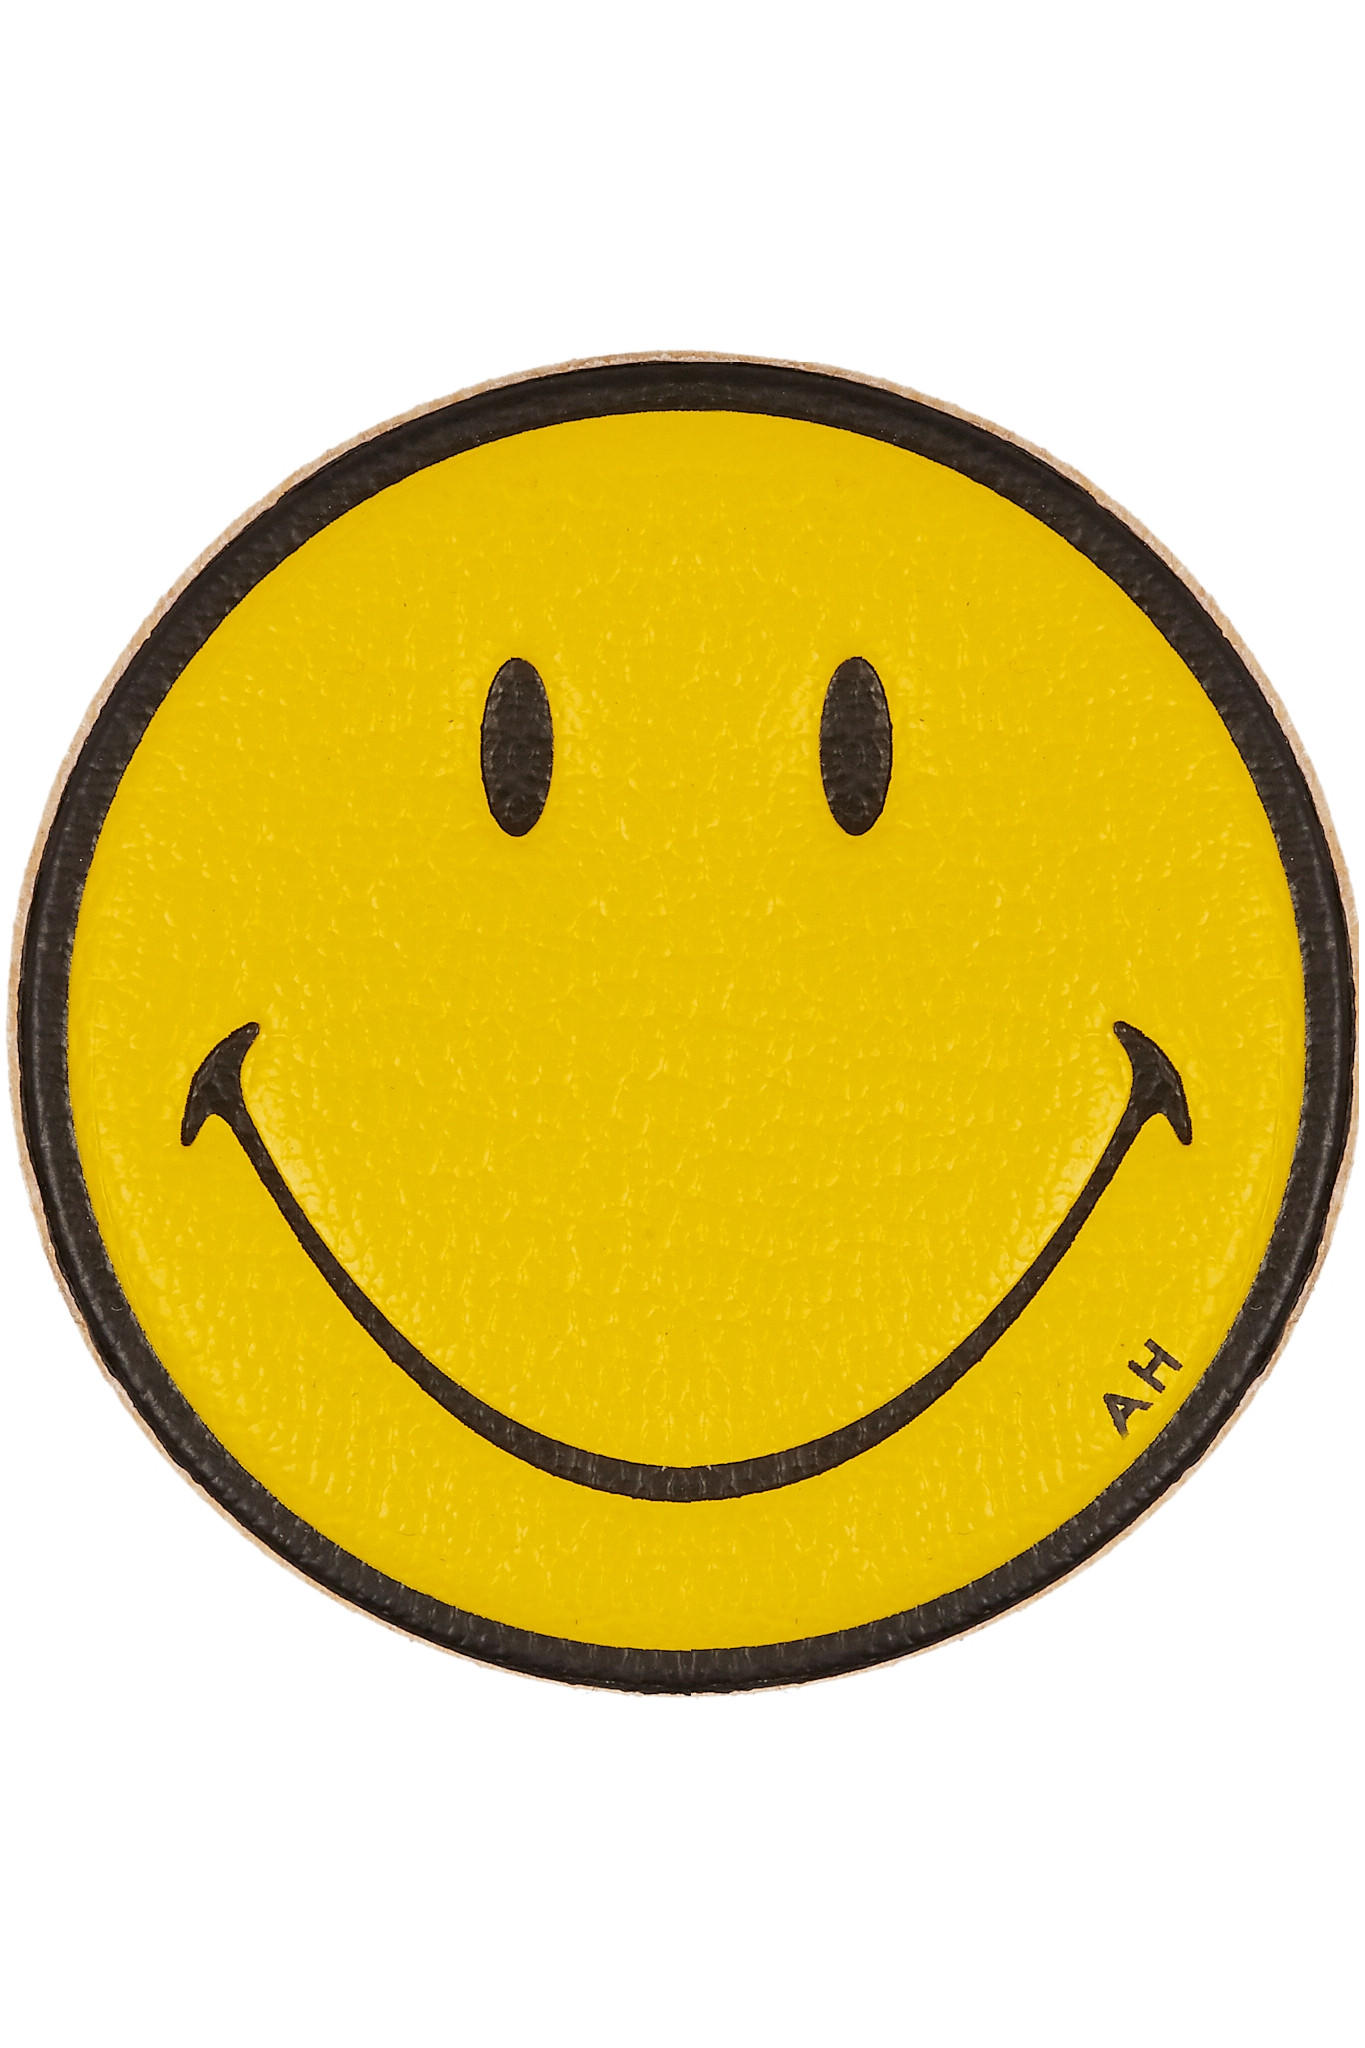 Anya Hindmarch Smiley Face From Net A Porter Things I